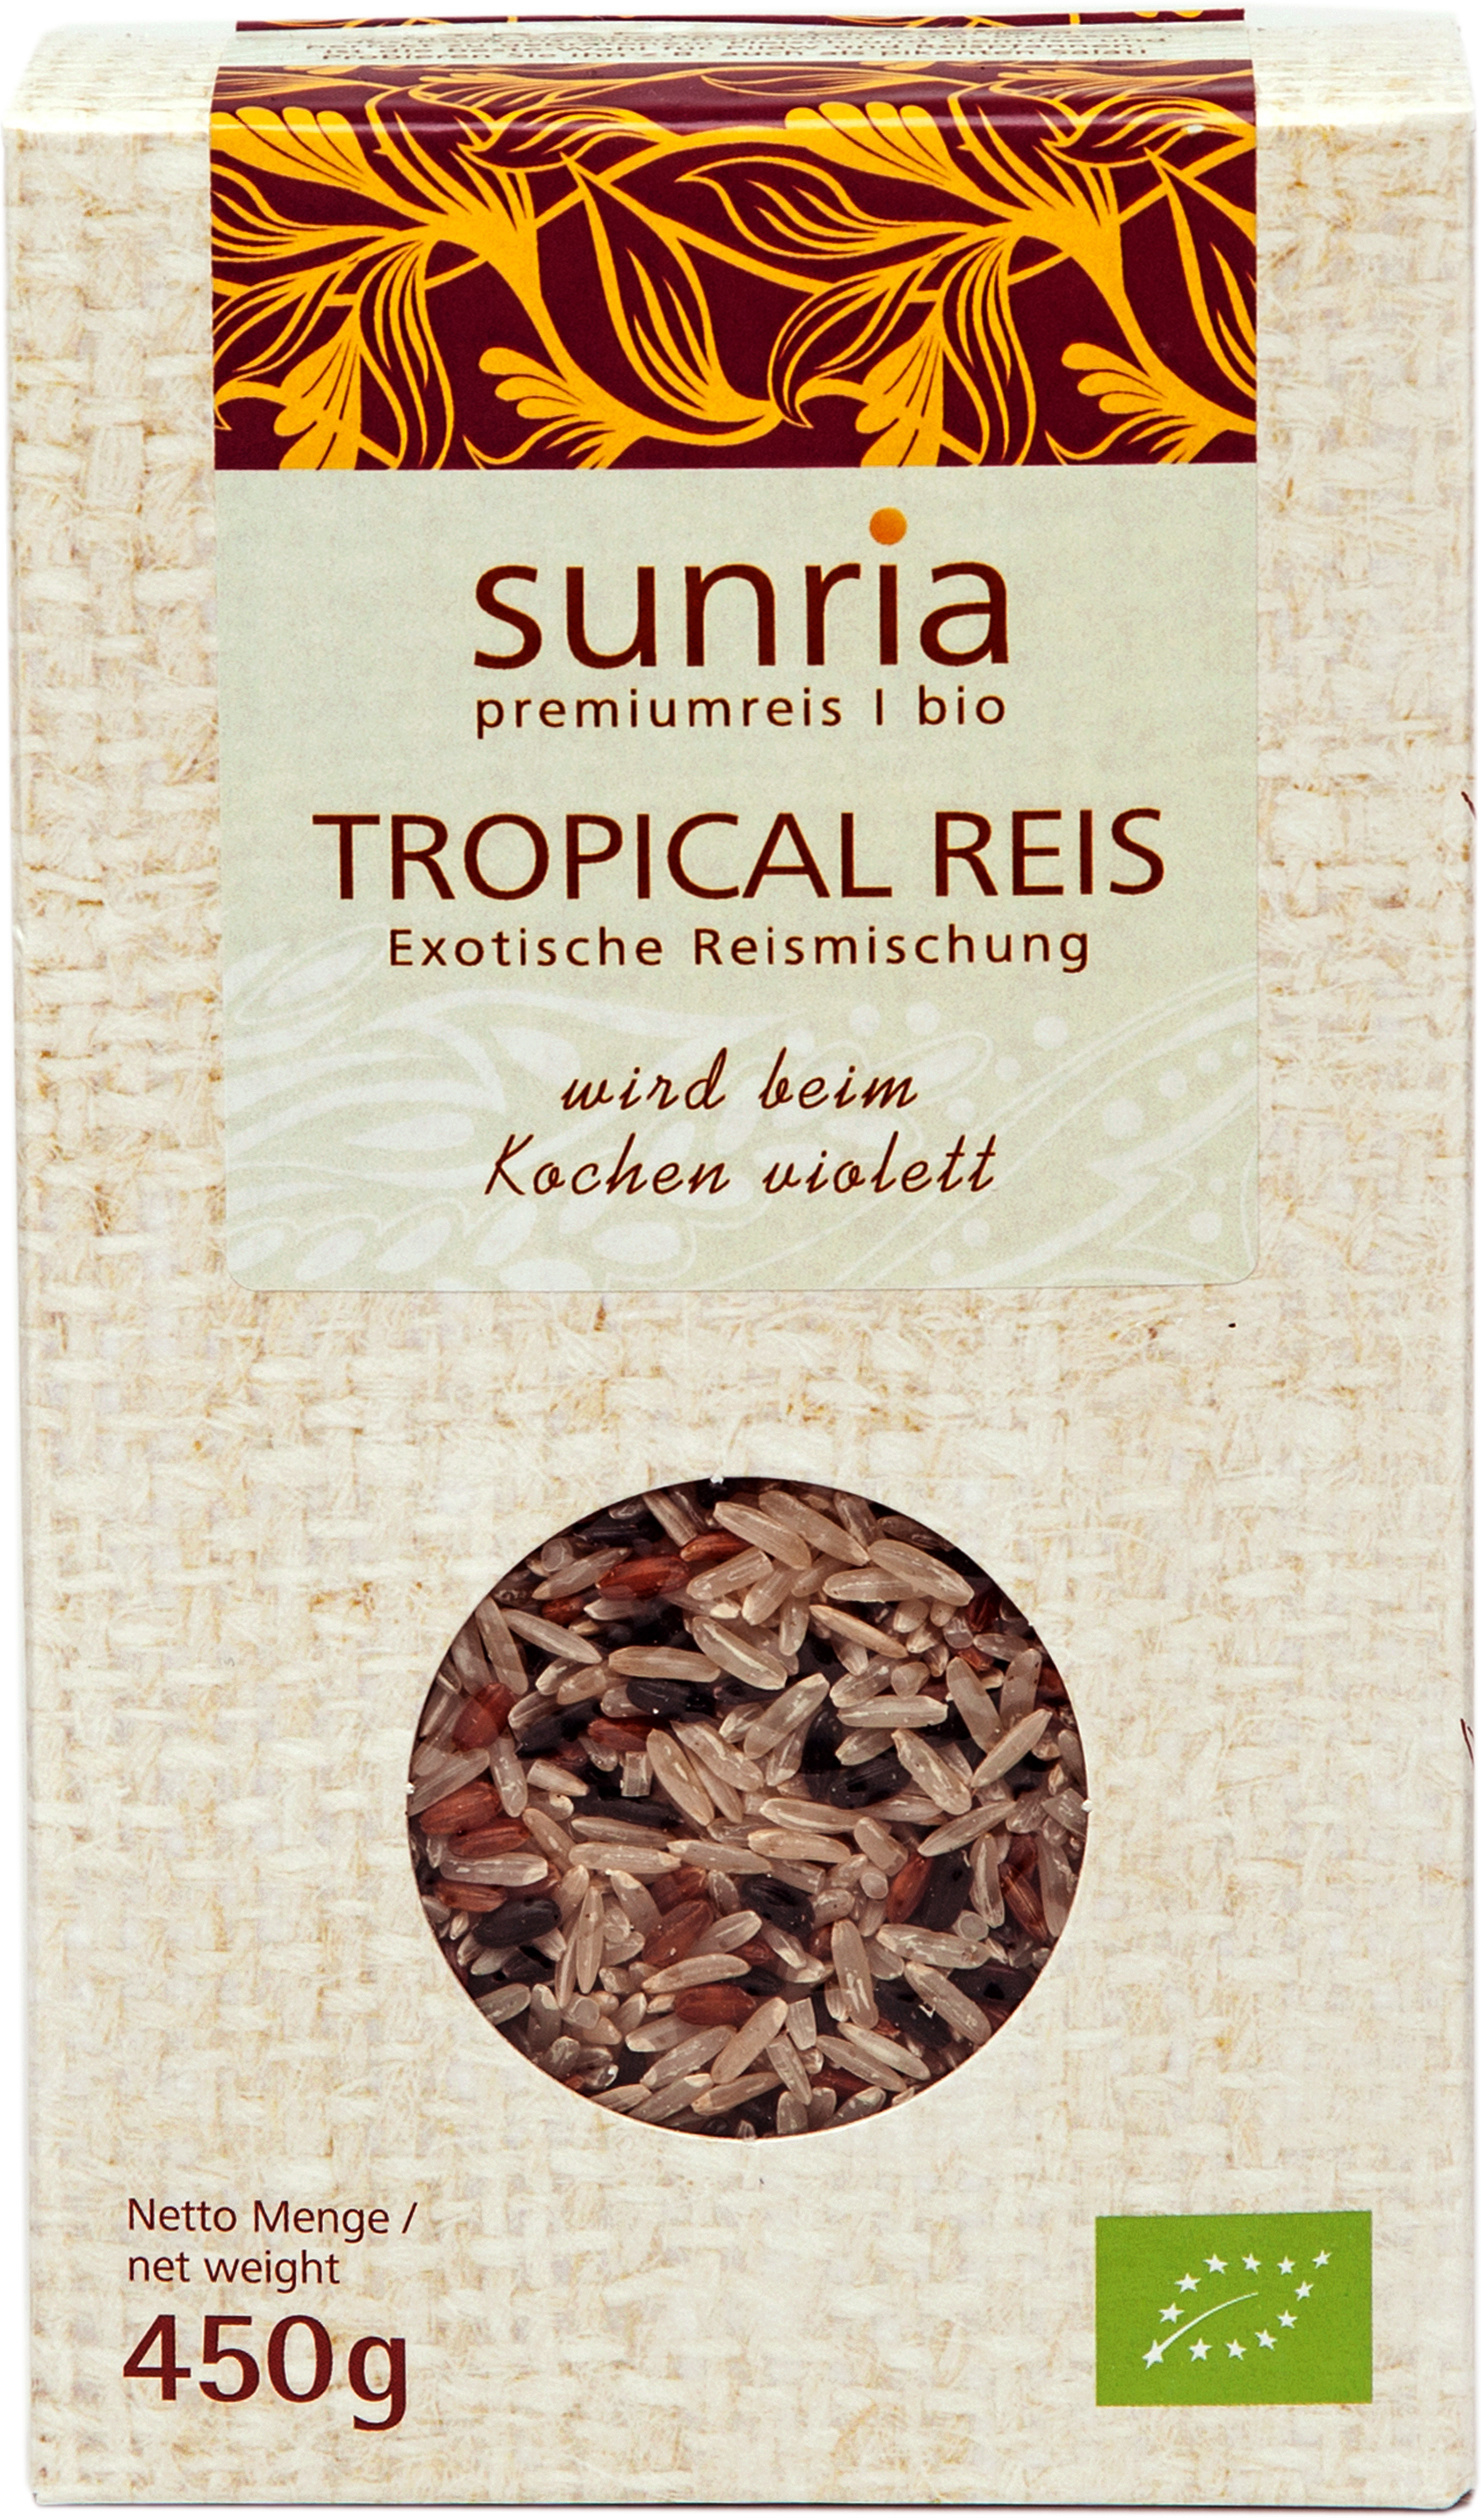 Sunria Tropical RIce - Product